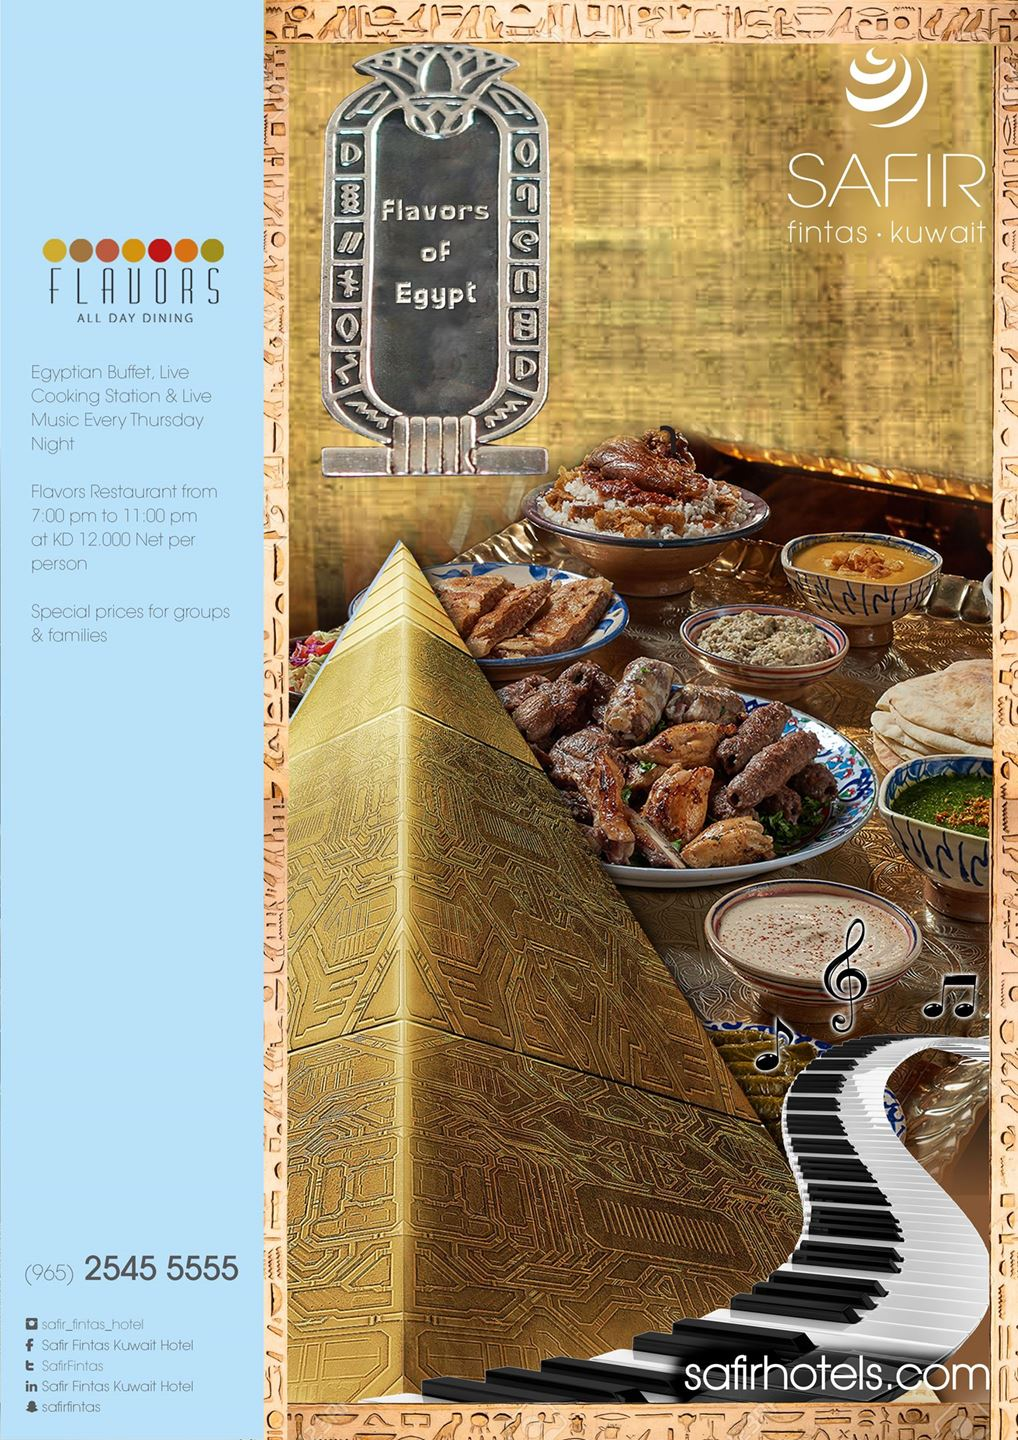 """Safir Fintas Kuwait Hotel launches """"Flavors of Egypt"""" every Thursday"""